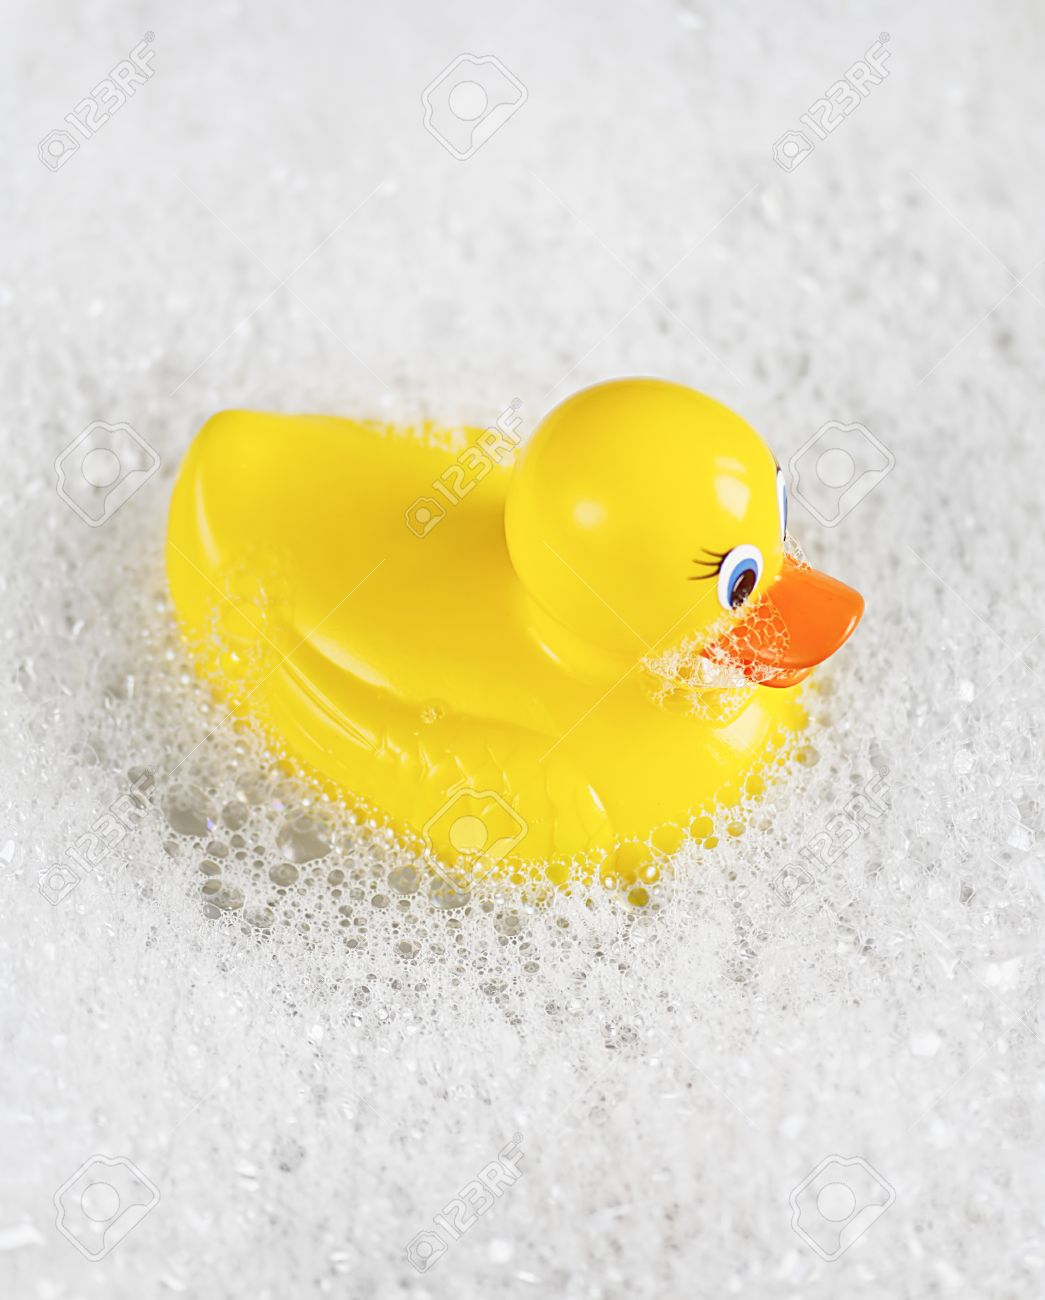 Bathtime Fun With A Yellow Rubber Ducky In A Bathtub Full Of.. Stock ...